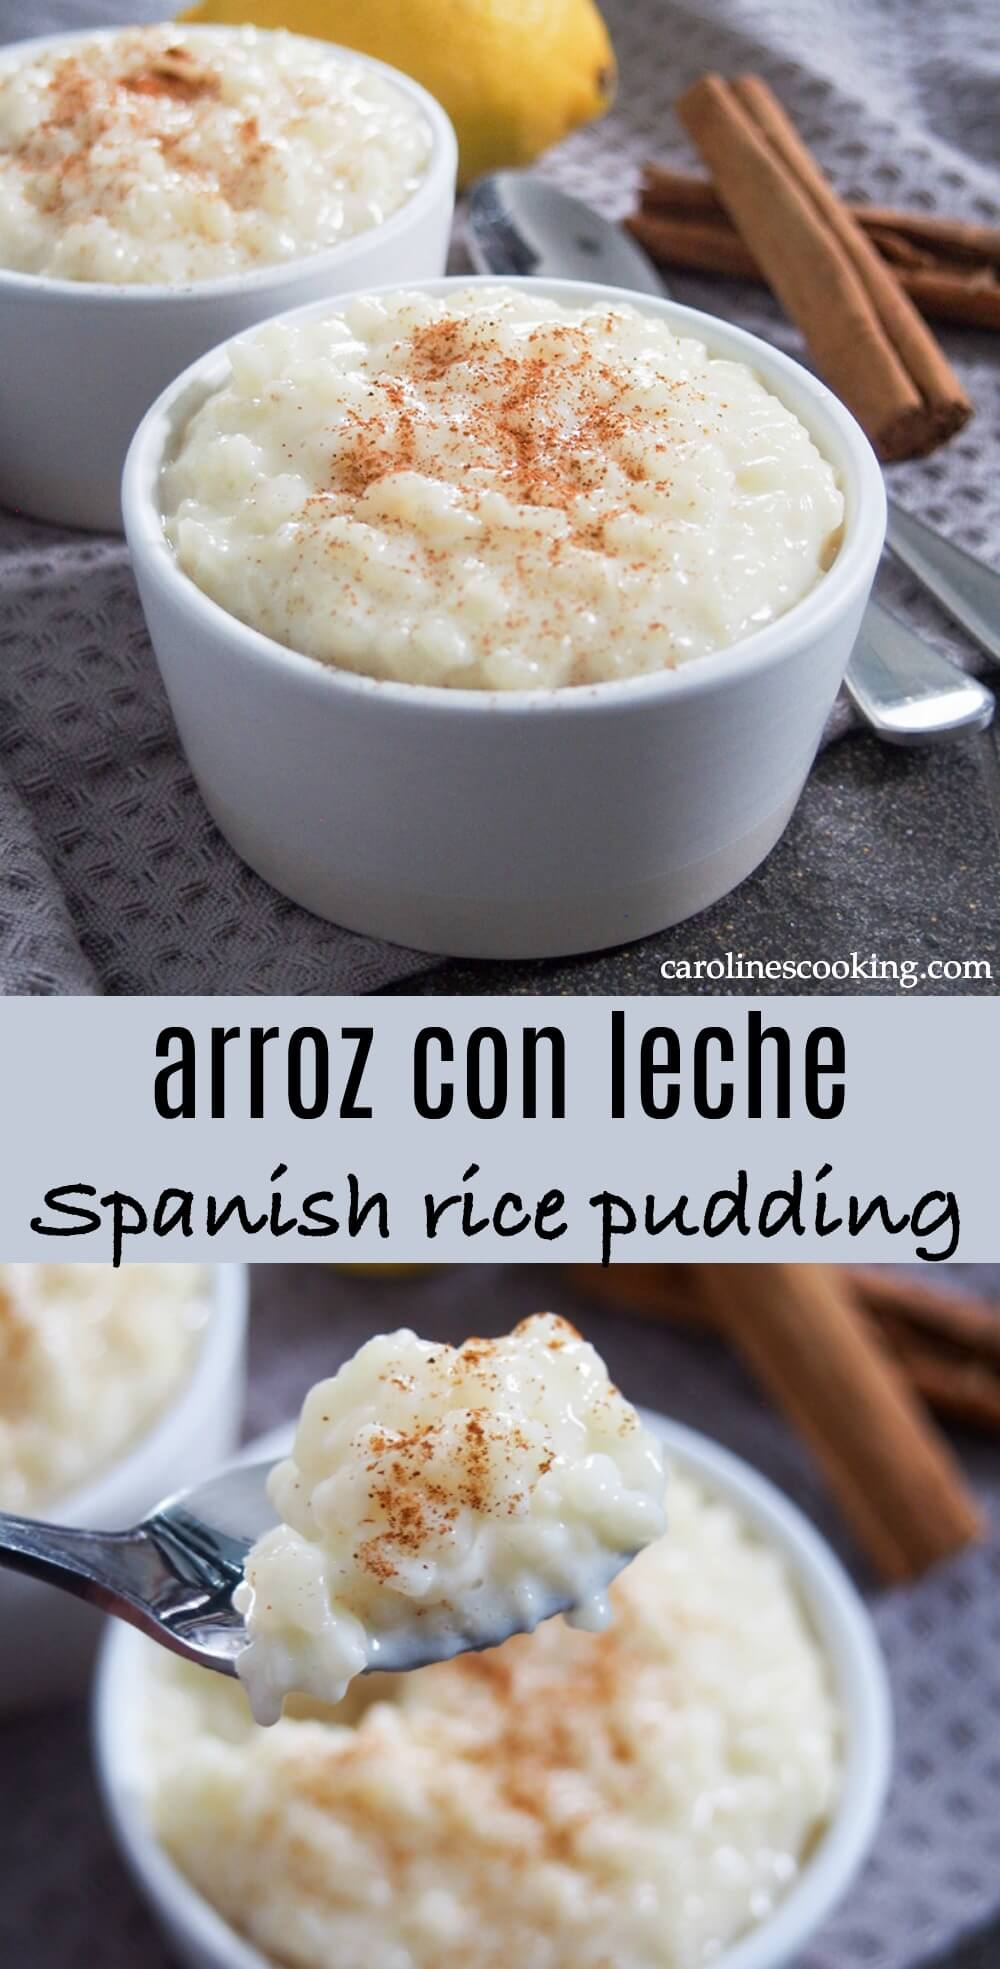 Arroz con leche, Spanish rice pudding, is an easy and comforting dessert. With warm cinnamon and fresh lemon flavors mixed in with the creamy rice, it's the perfect end to any meal. #ricepudding #dessert #spanishfood